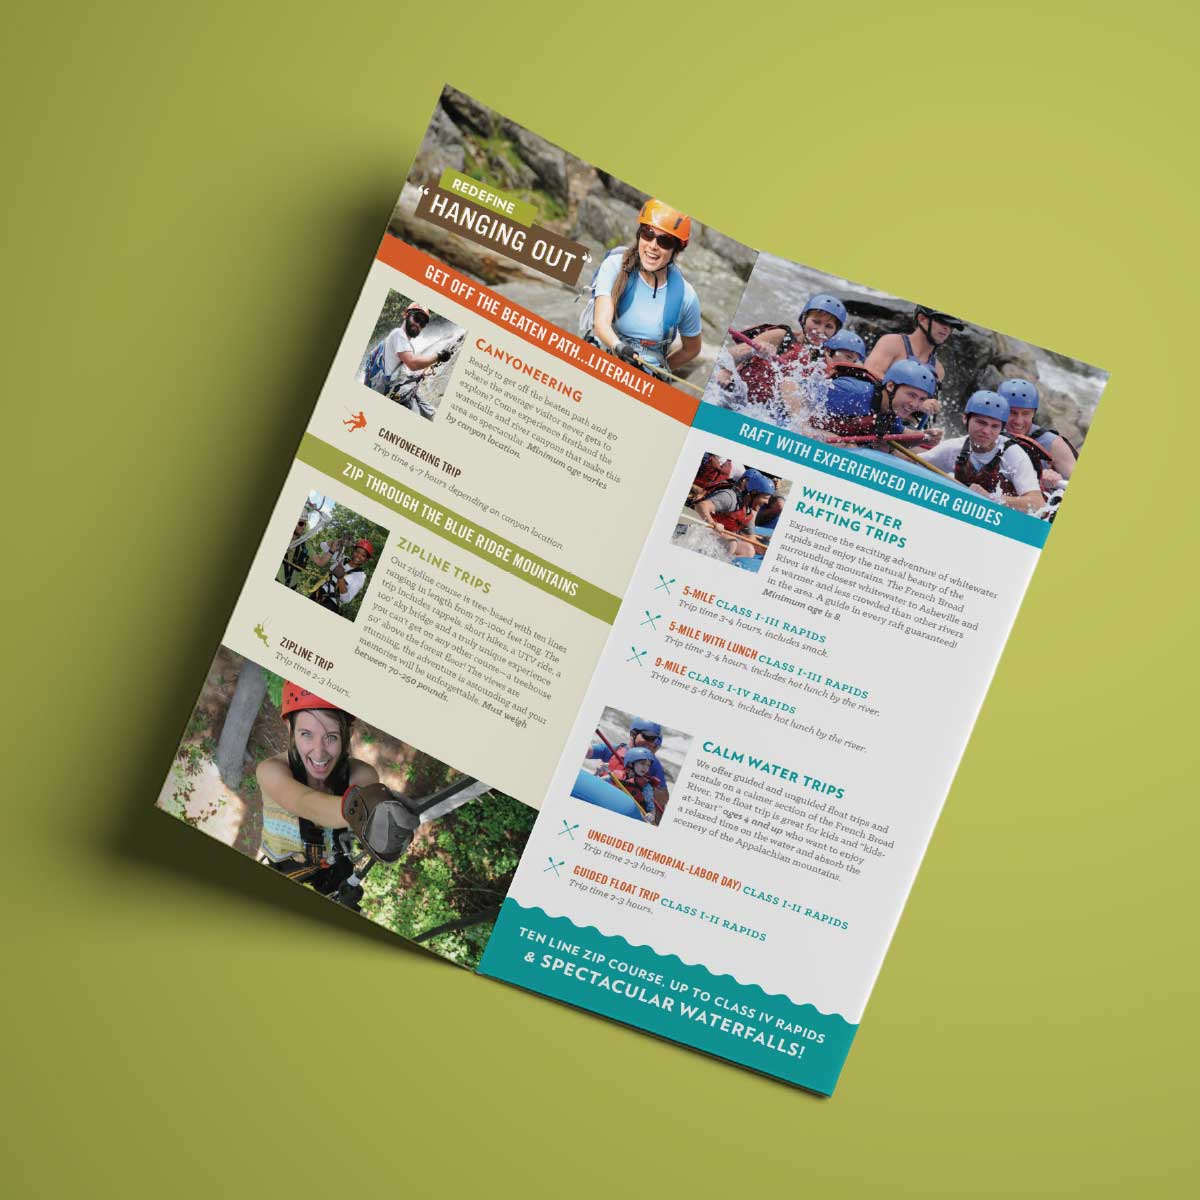 French Broad Adventures brochure inside